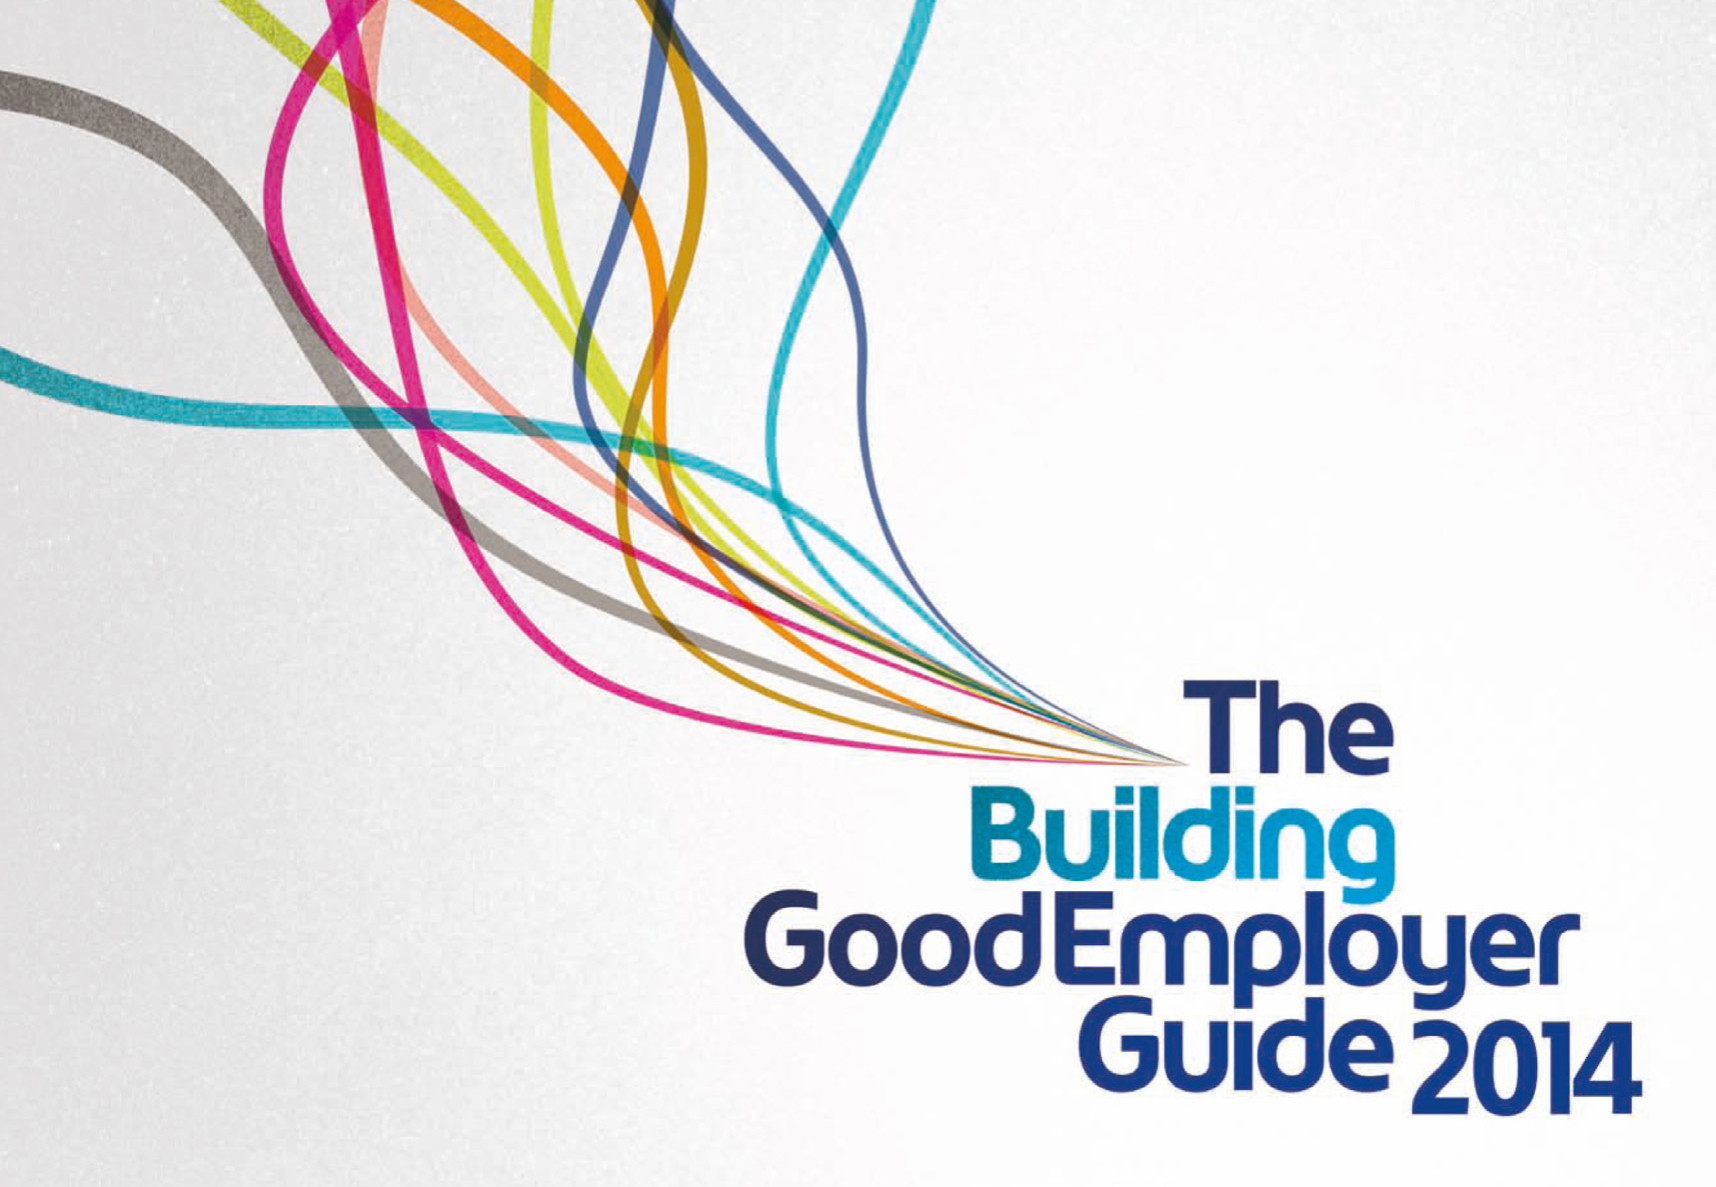 03012015-news-building-magazine-good-employer-54e3253cb3e5e.jpg (original)